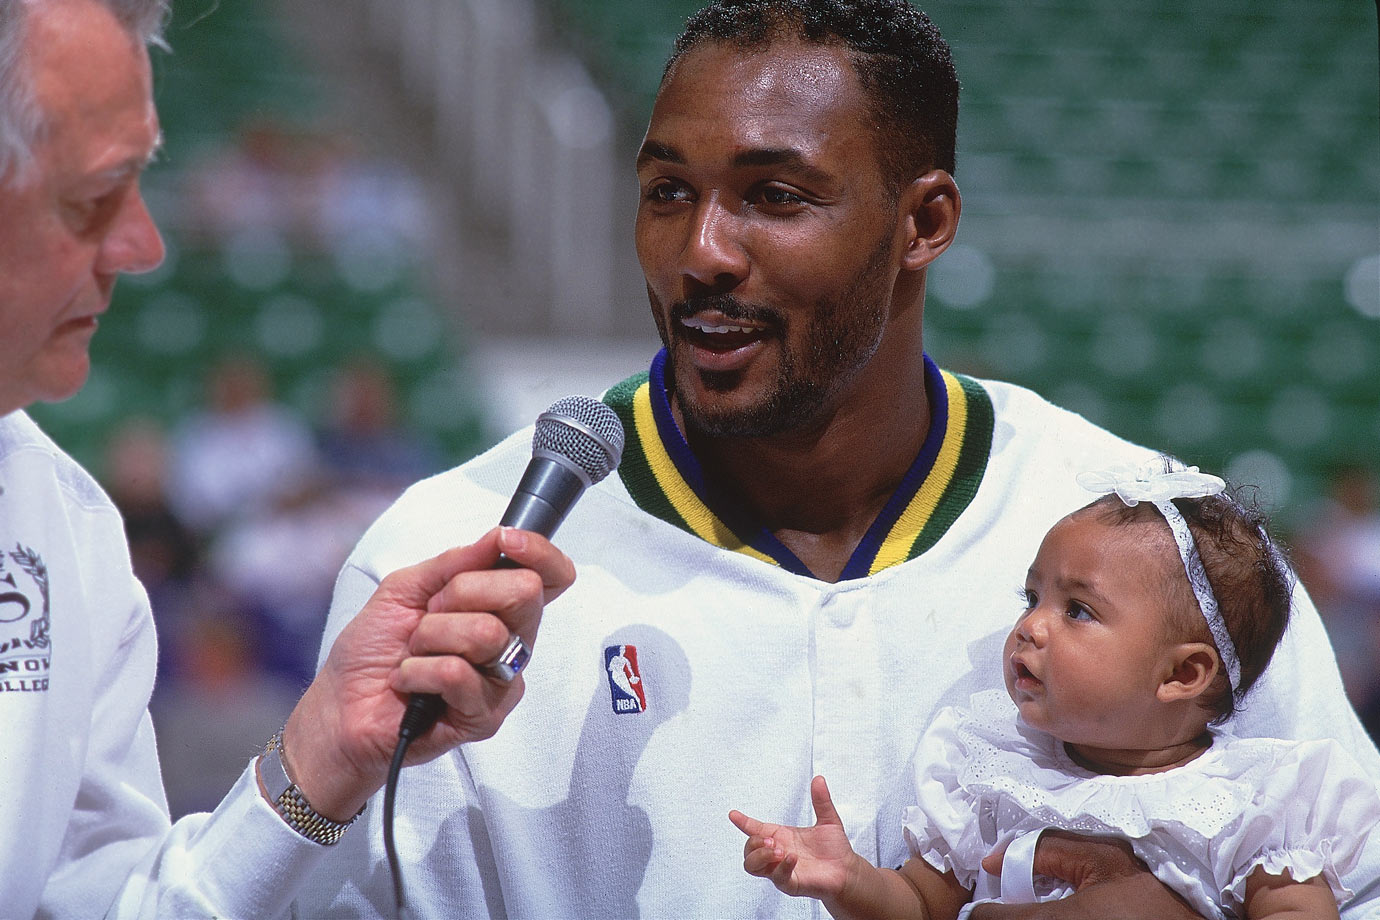 Karl Malone gives an interview while holding his five-month-old daughter Kadee.